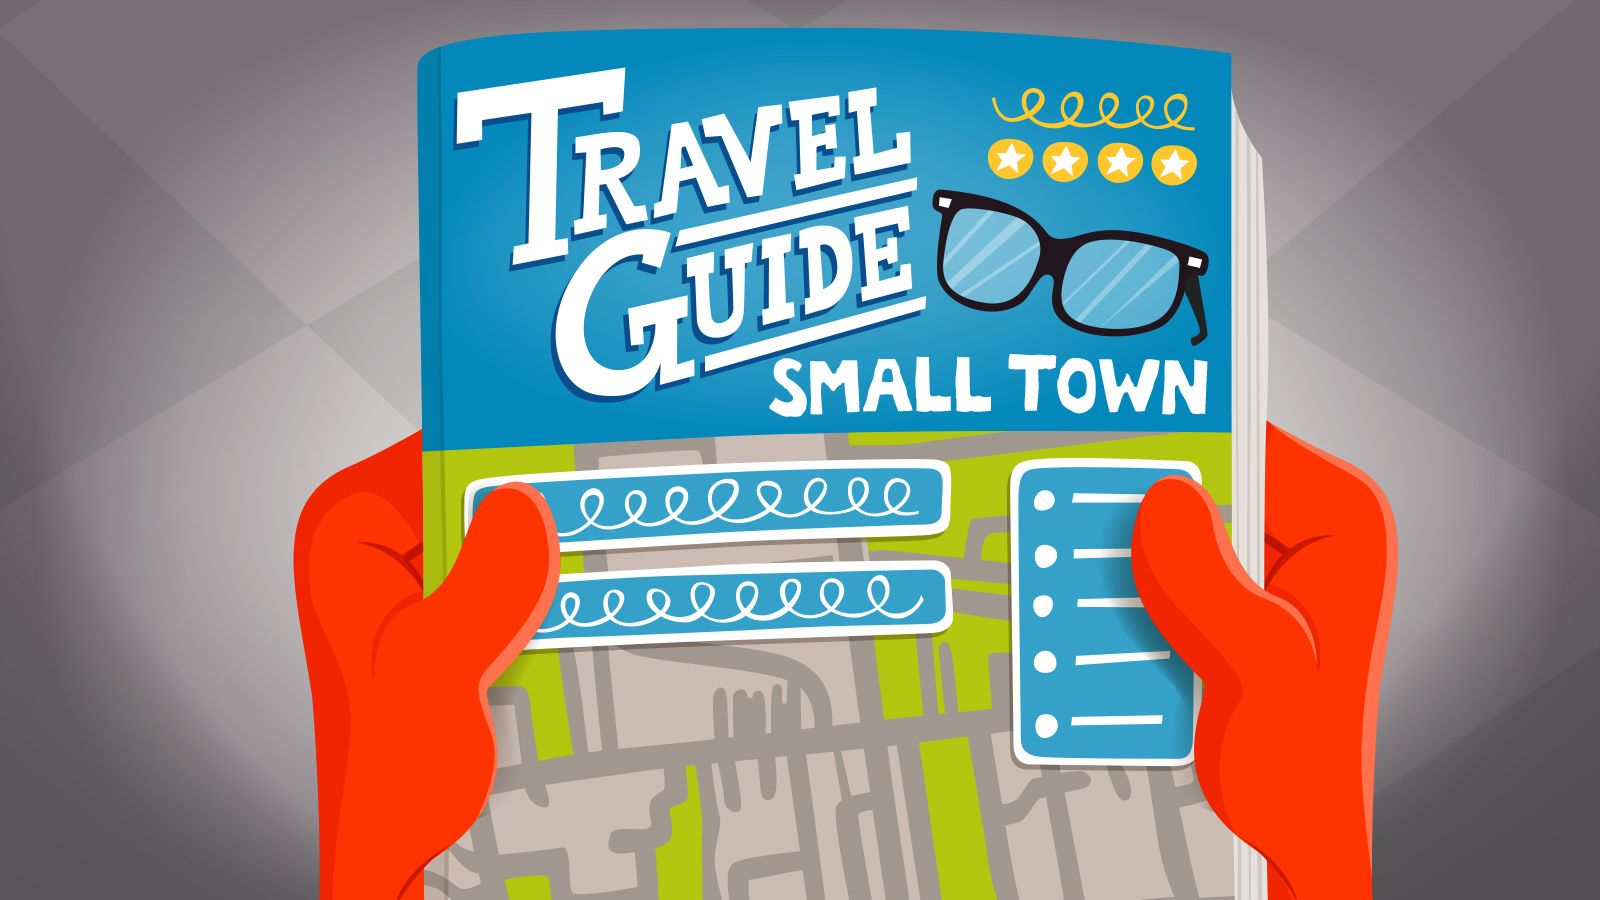 Smalltown travel guide